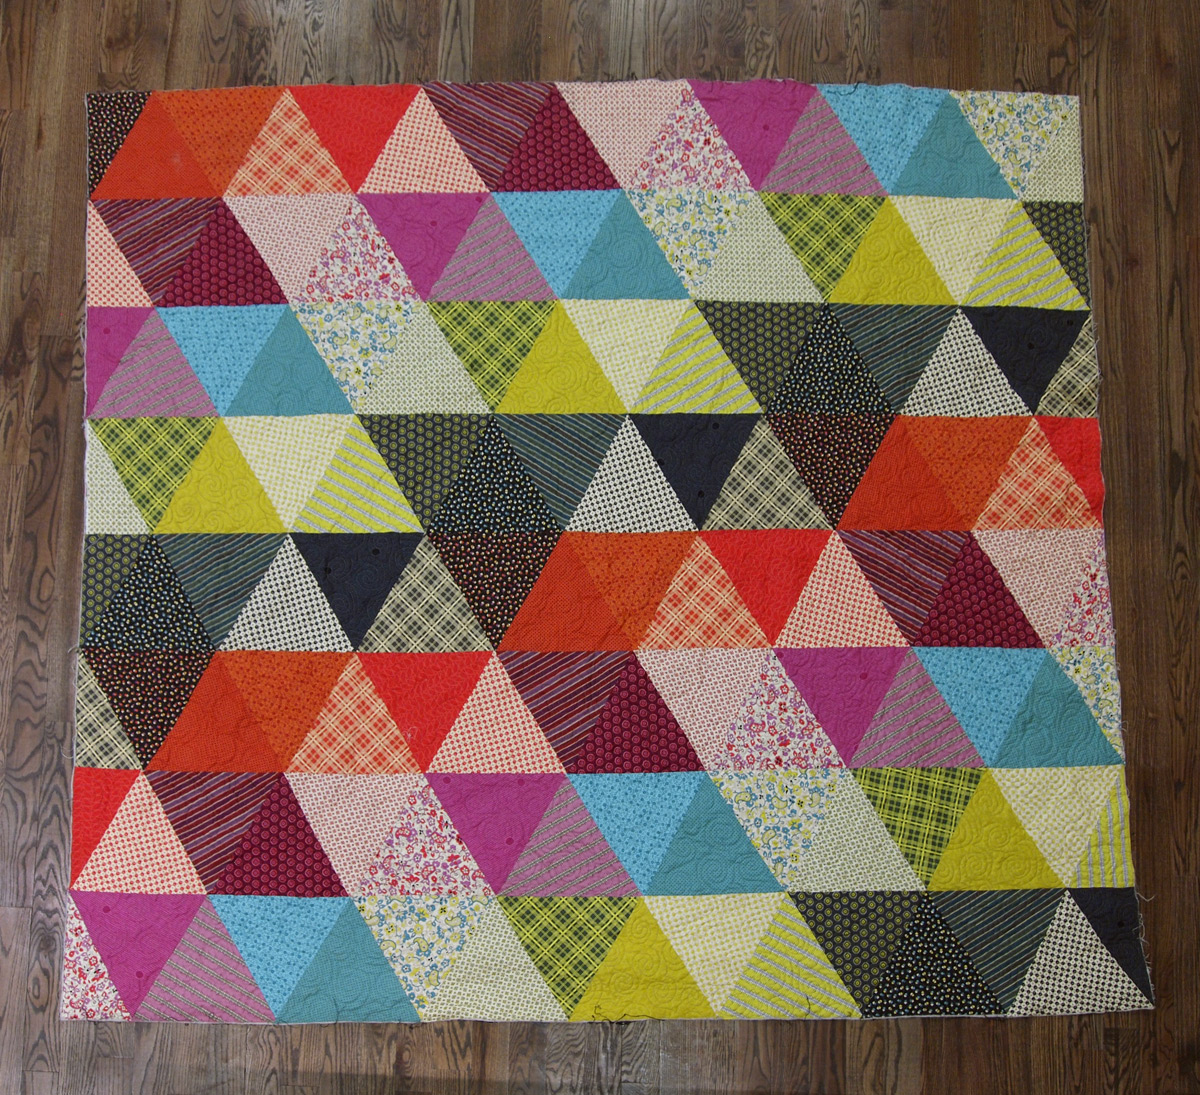 Quilting Pattern Shapes : Fancy Tiger Crafts: Pyramid Pals! Three Chicopee Quilts (+ Tutorial!)